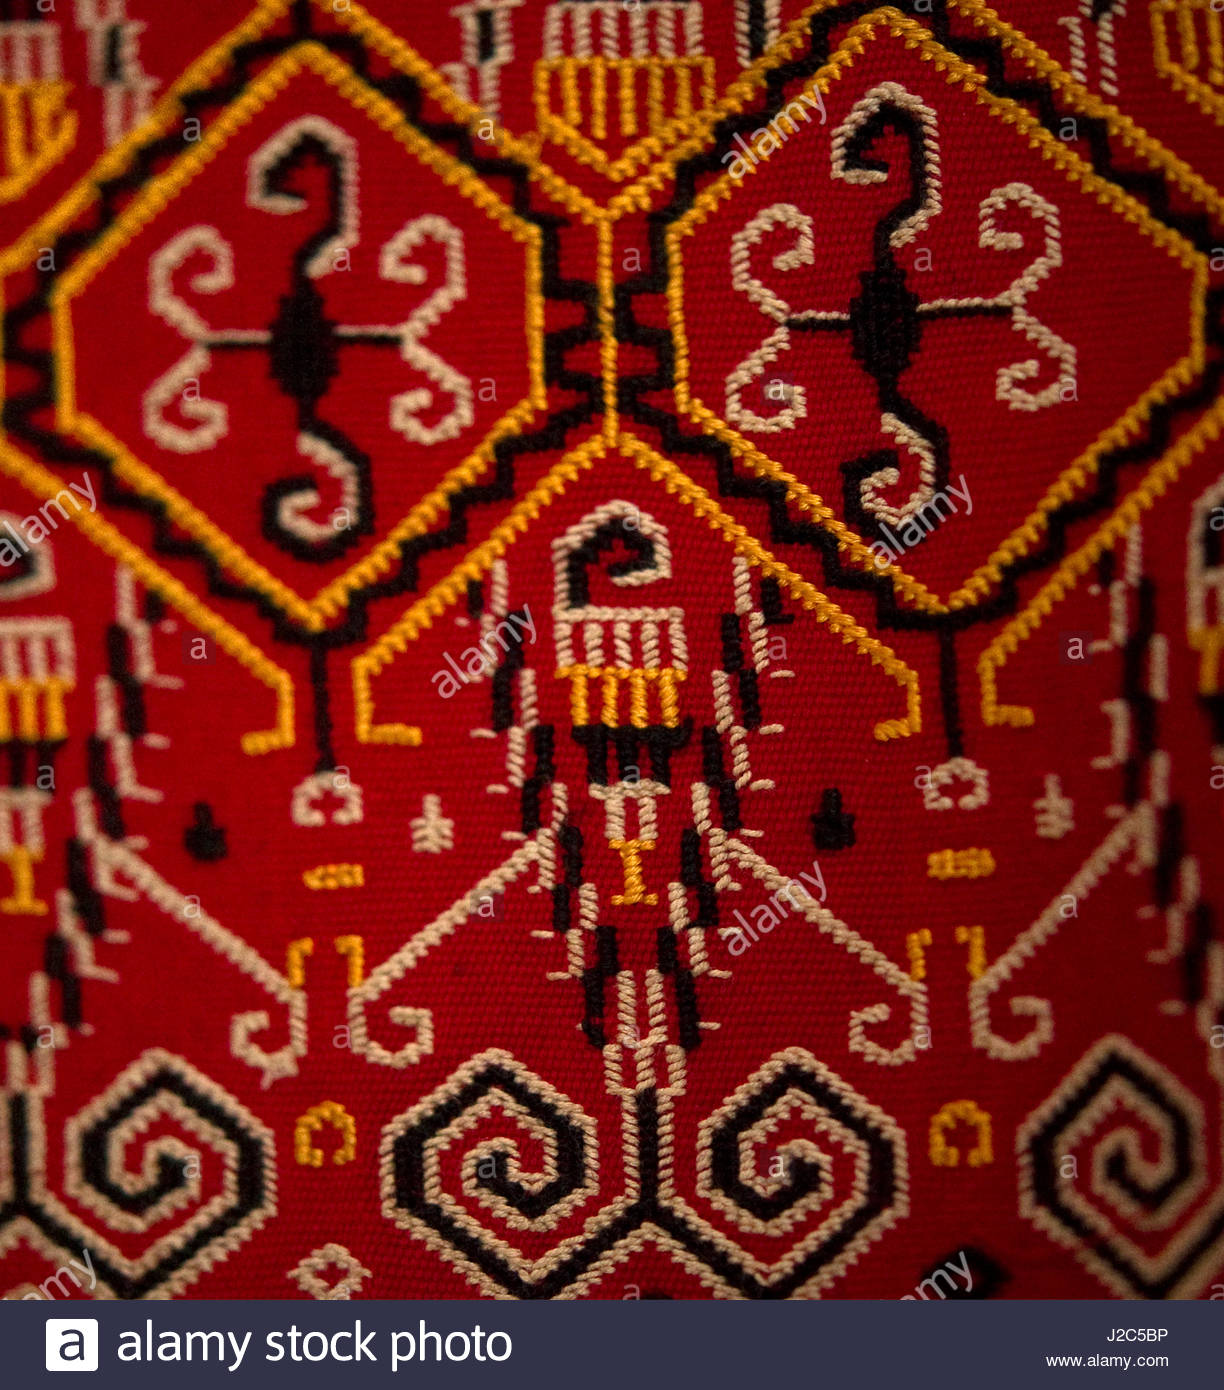 D'Antique Motif Textile Asiatique (PR) Photo Stock